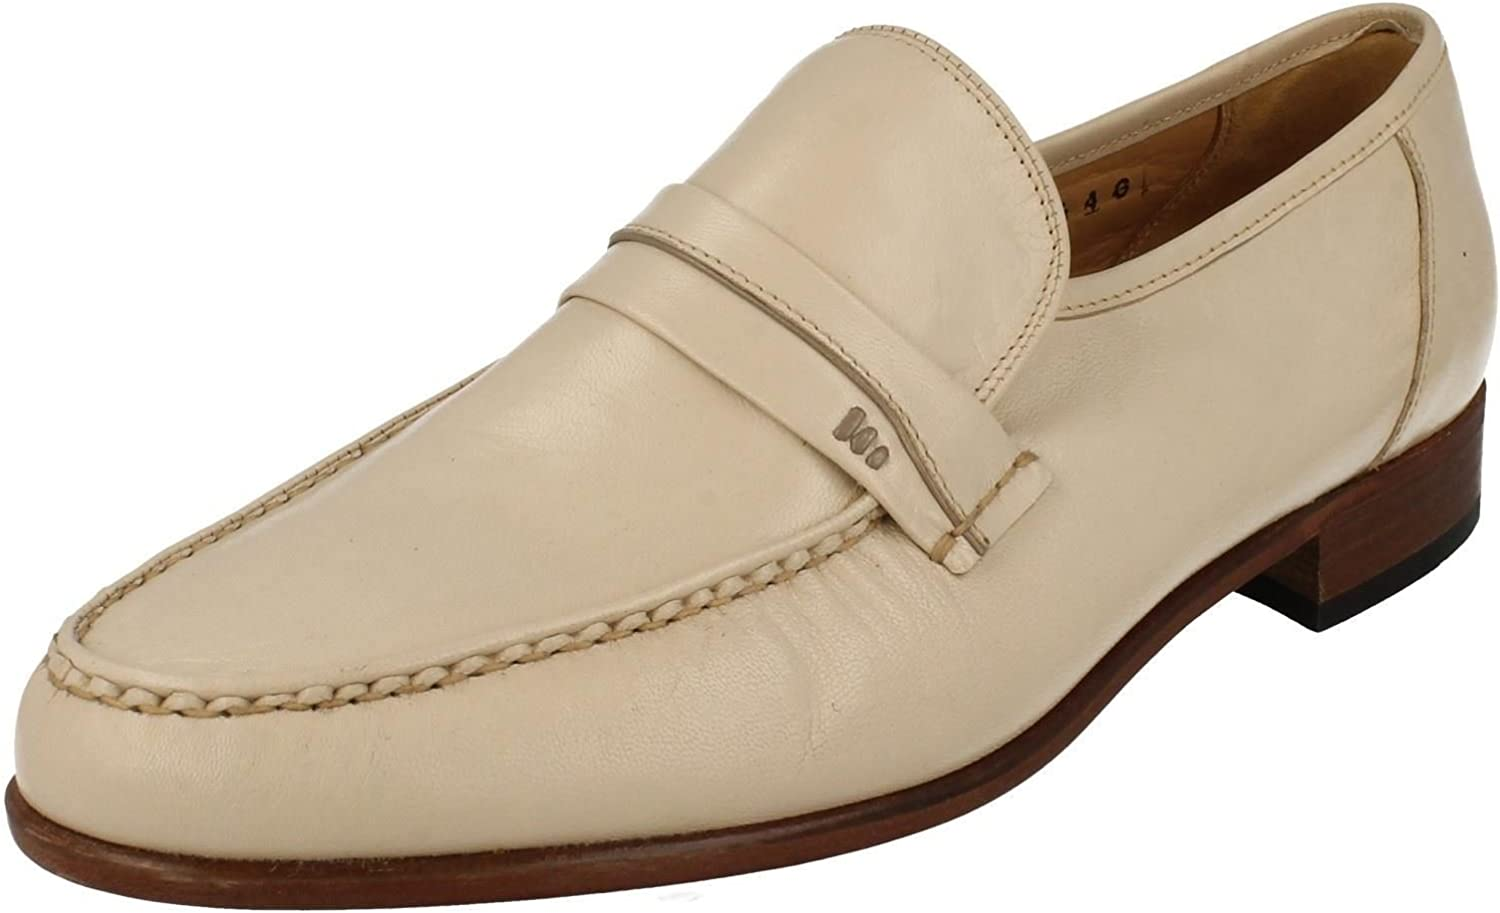 Mens Grenson Slip On Moccasin shoes Fitting G Style - Arizona 9654